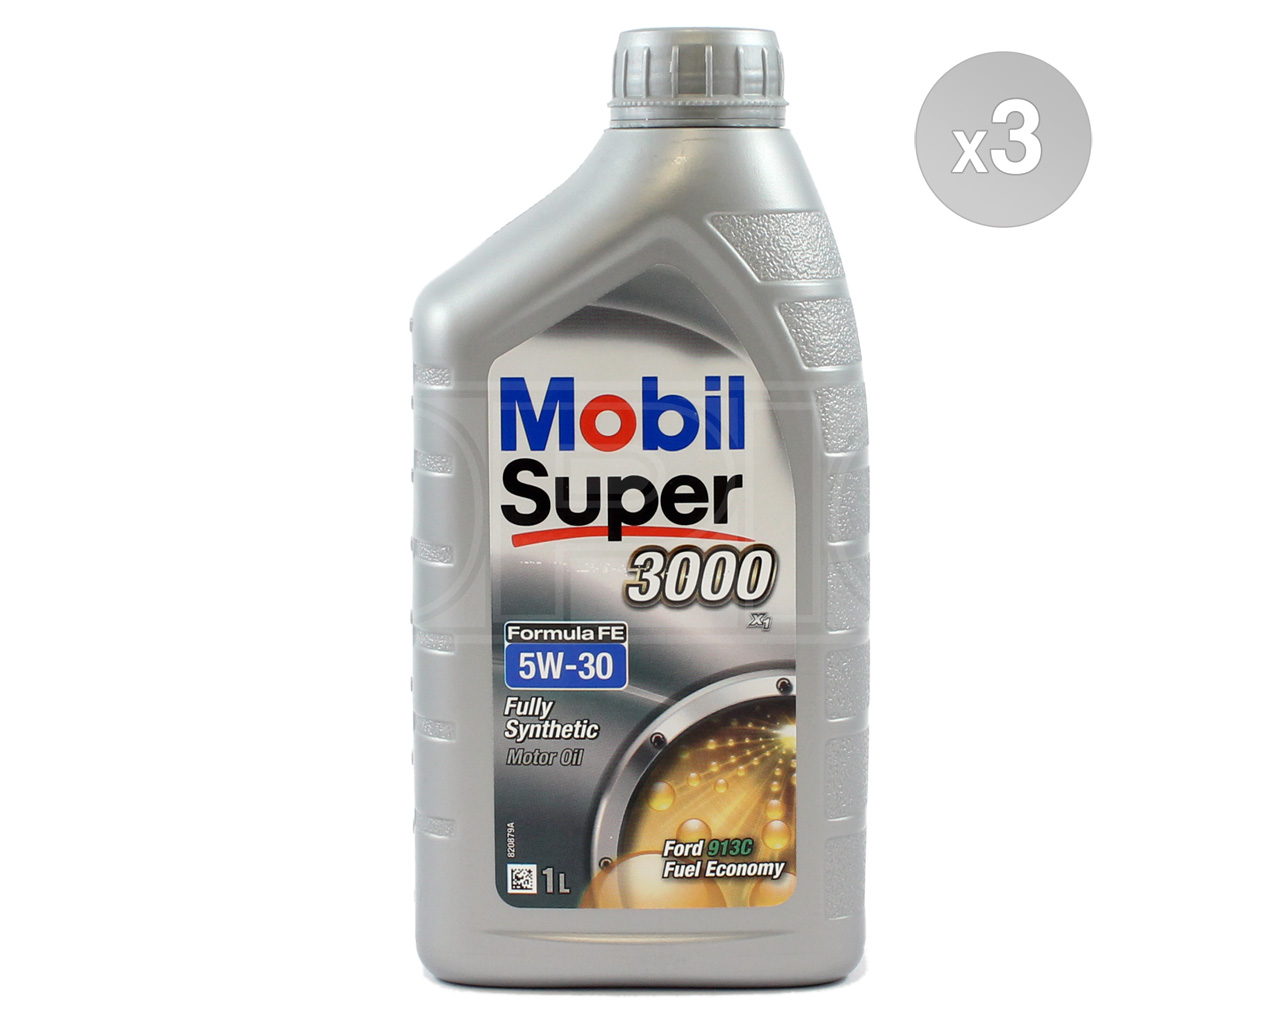 Mobil Super 3000 X1 FE 5w-30 Fully Synthetic Engine Oil